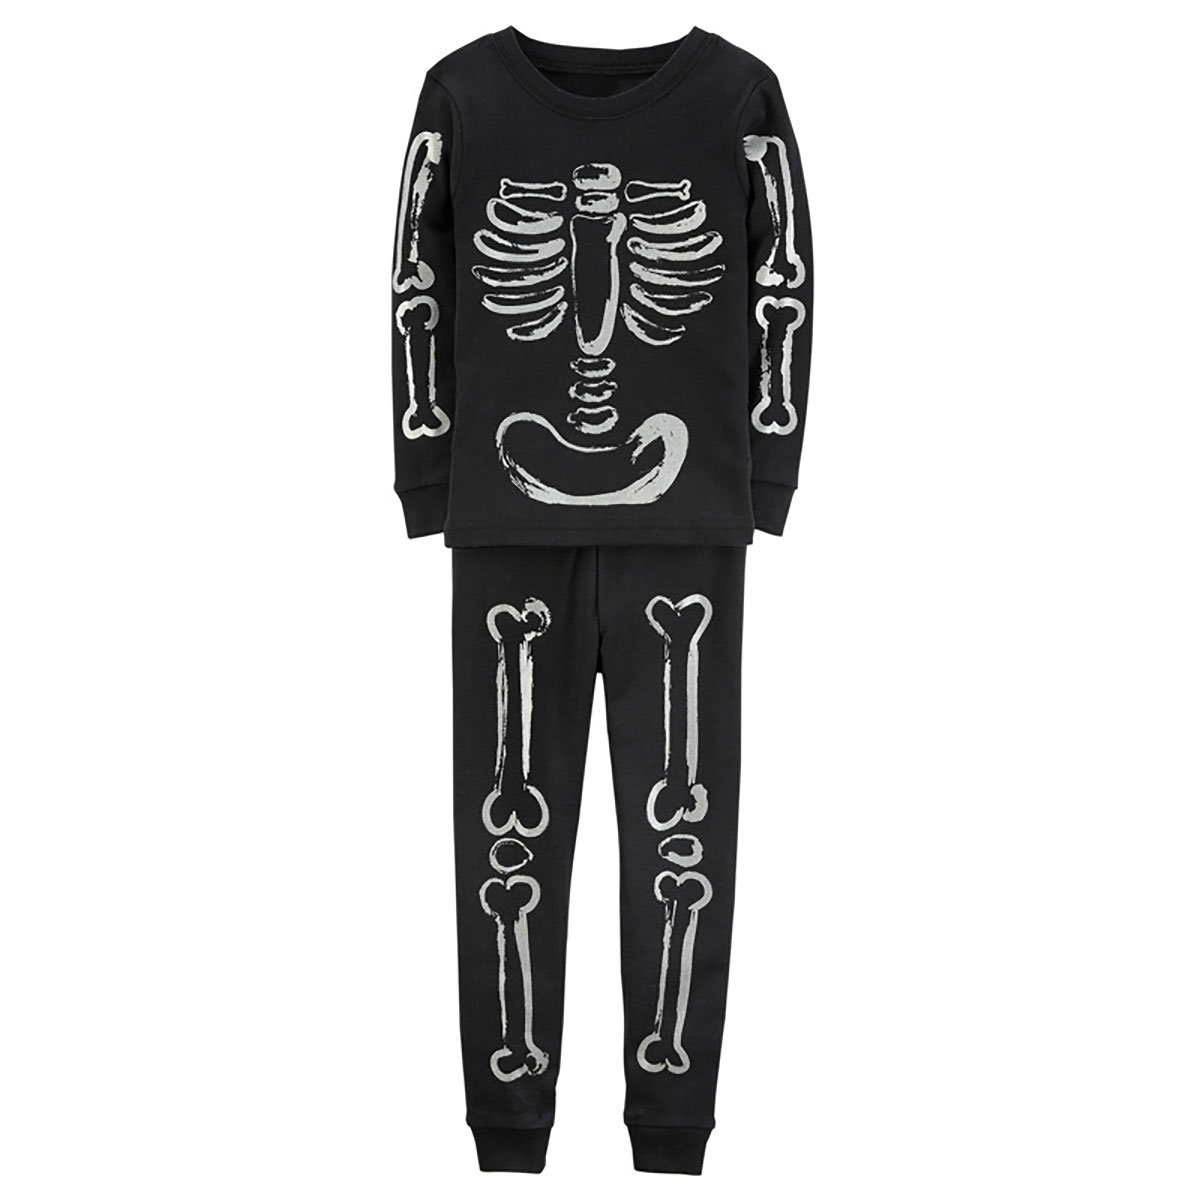 Kids Boys Skeleton Bones Costume Cotton Pajamas Clothes Set G7559